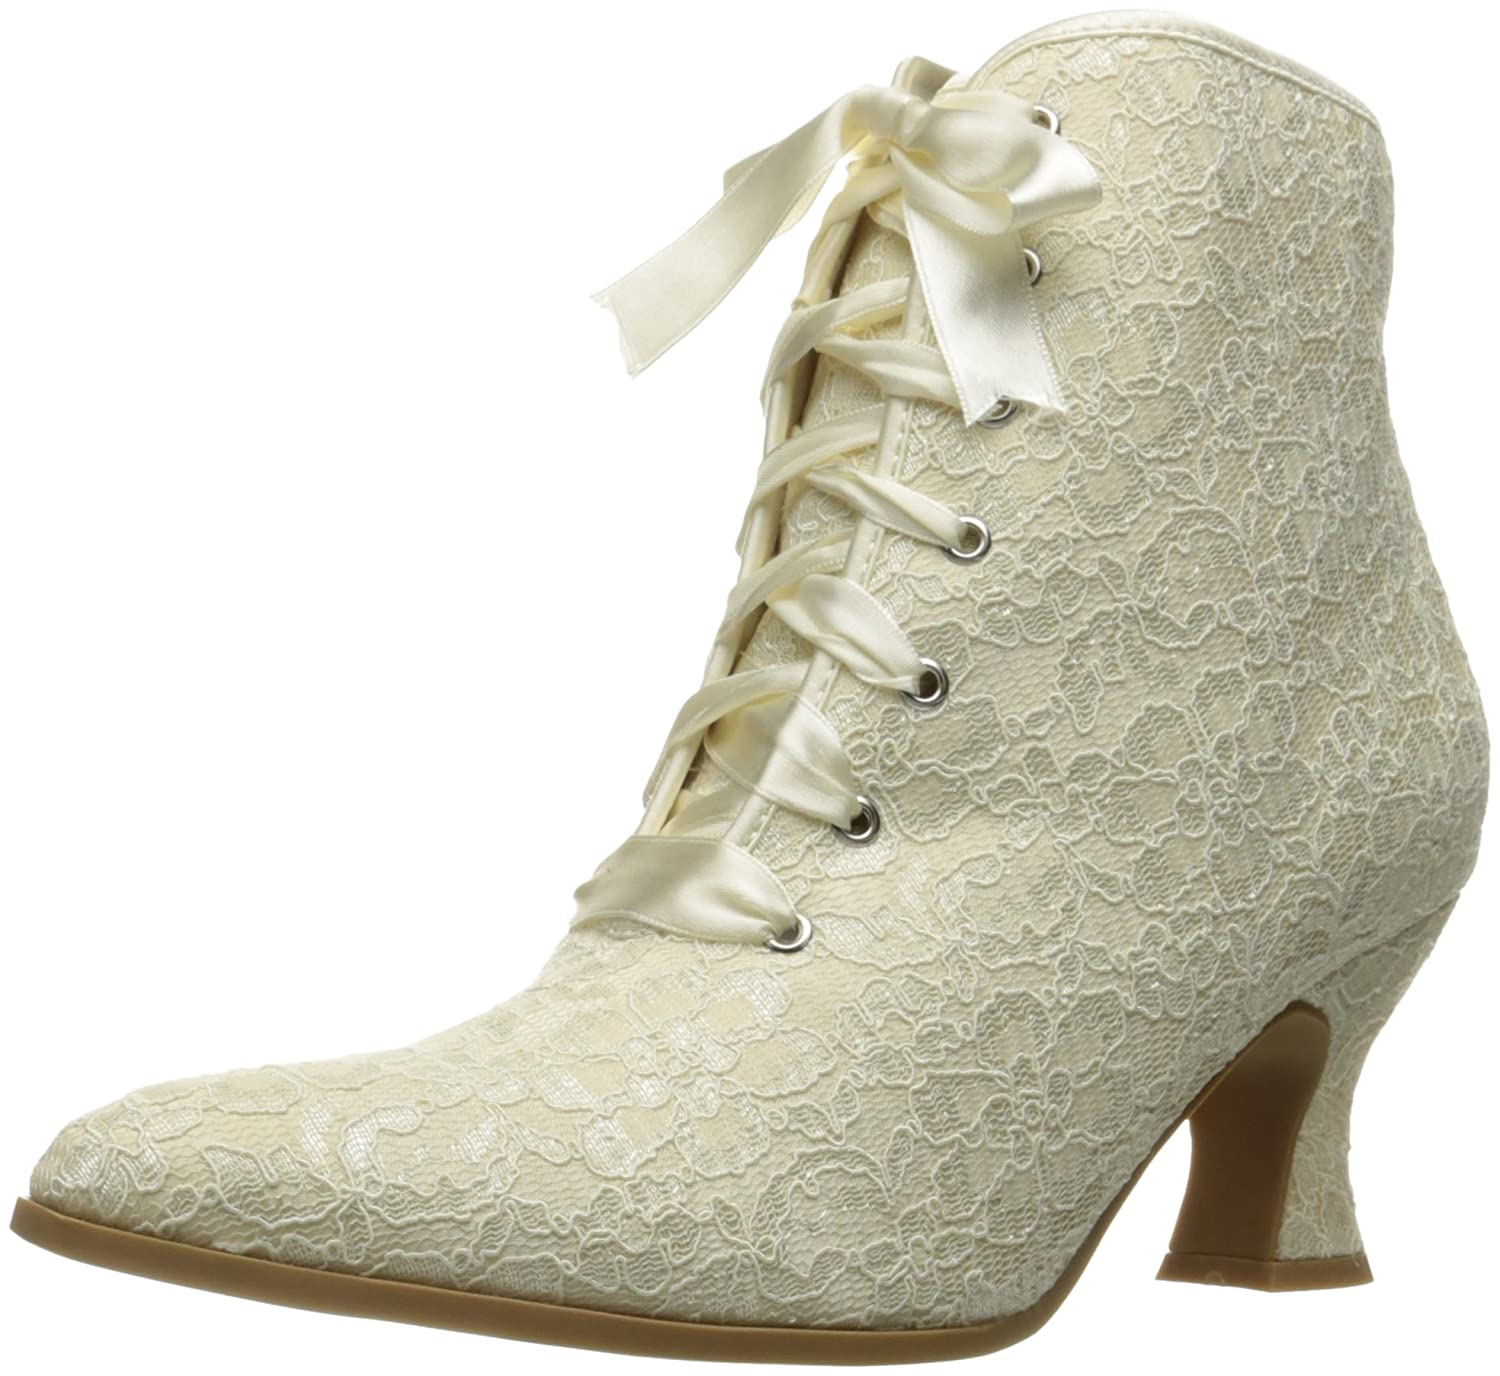 Vintage Boots- Buy Winter Retro Boots Ellie Shoes Womens 253-elizabeth Ankle Bootie $43.93 AT vintagedancer.com